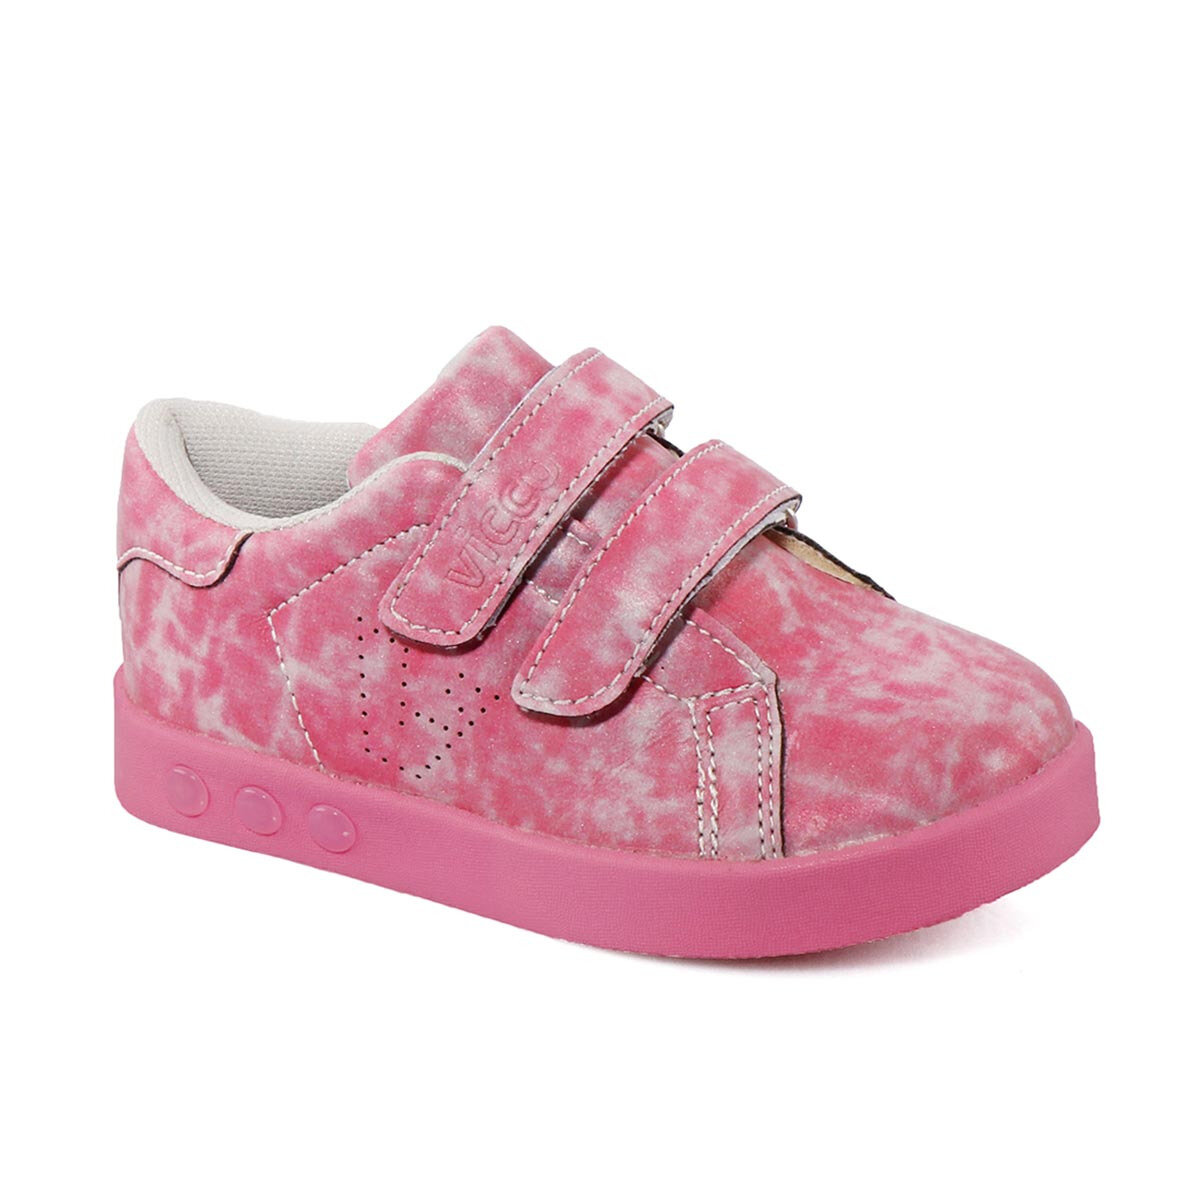 FLO 937.18Y.098 BOOTIES SPORTS Pink Female Child Sneaker Shoes VICCO